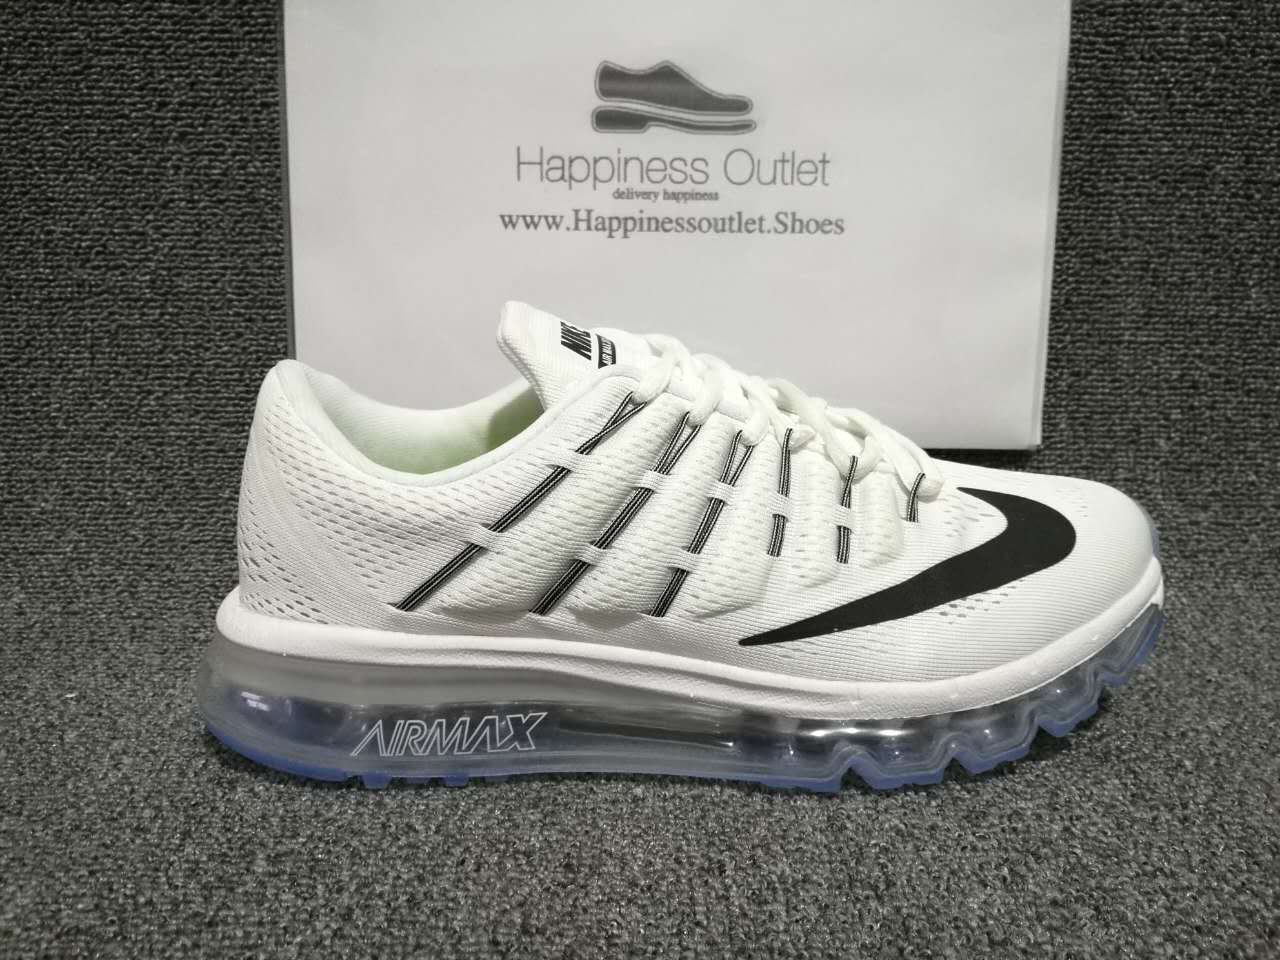 Air Max 2016 Size Guide